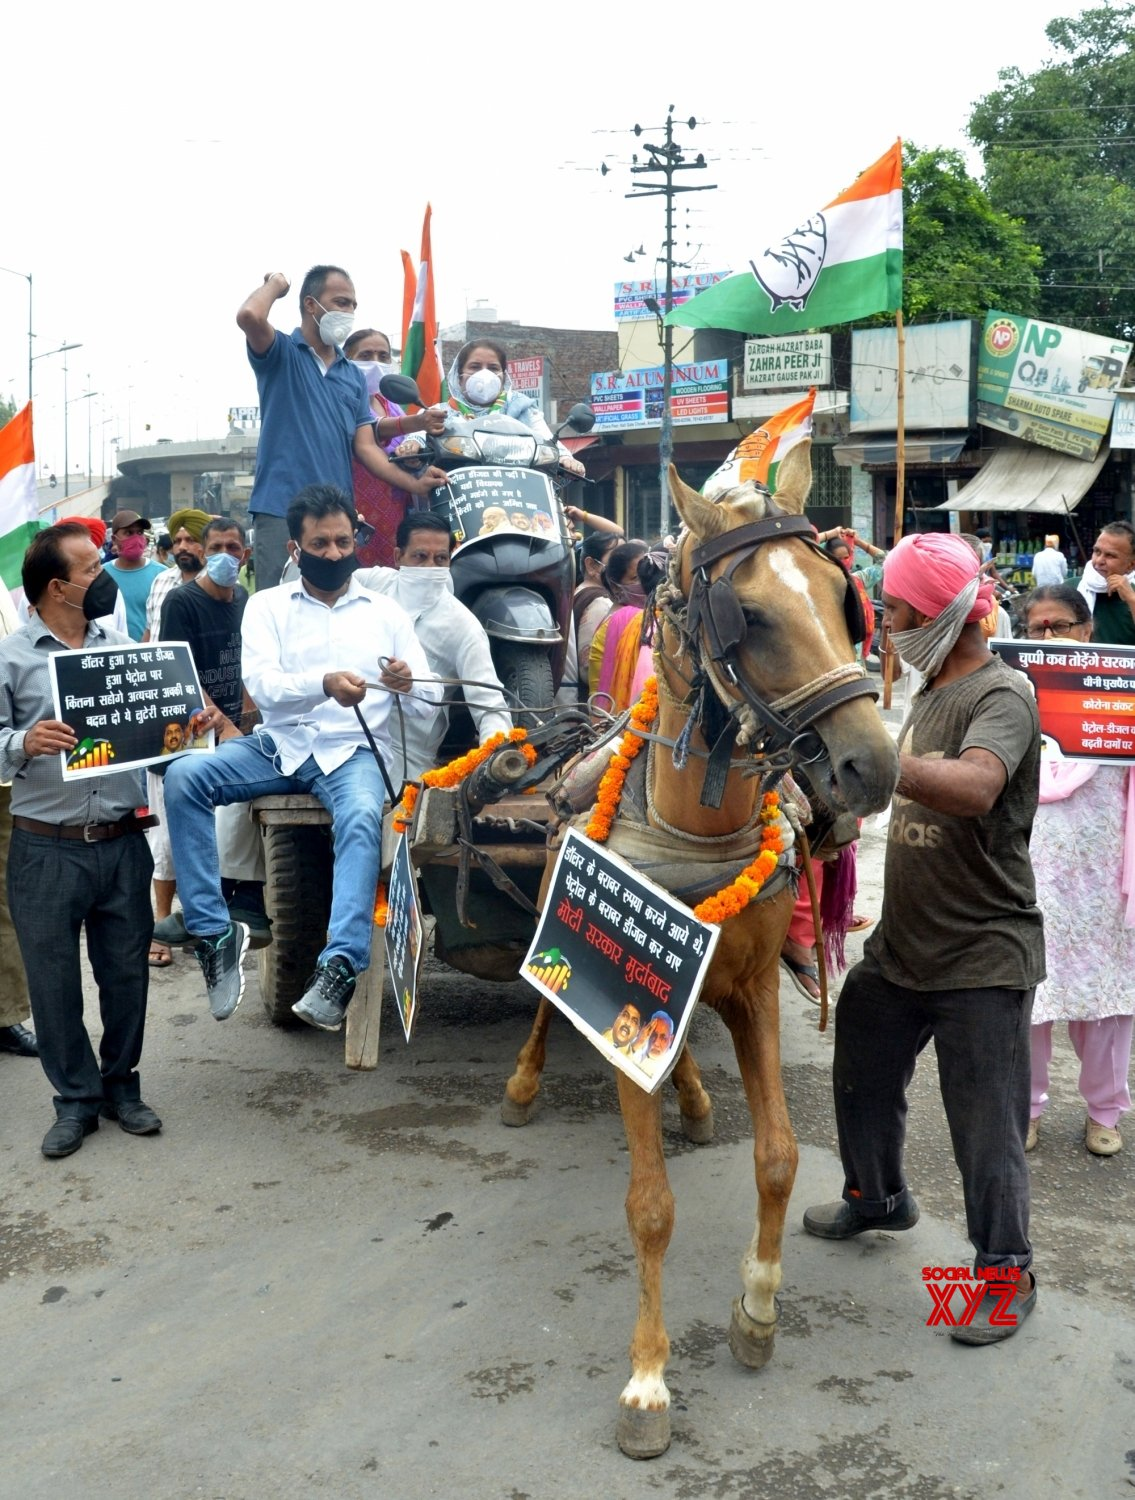 Amritsar: Congress protests against fuel price hike (Batch - 2) #Gallery